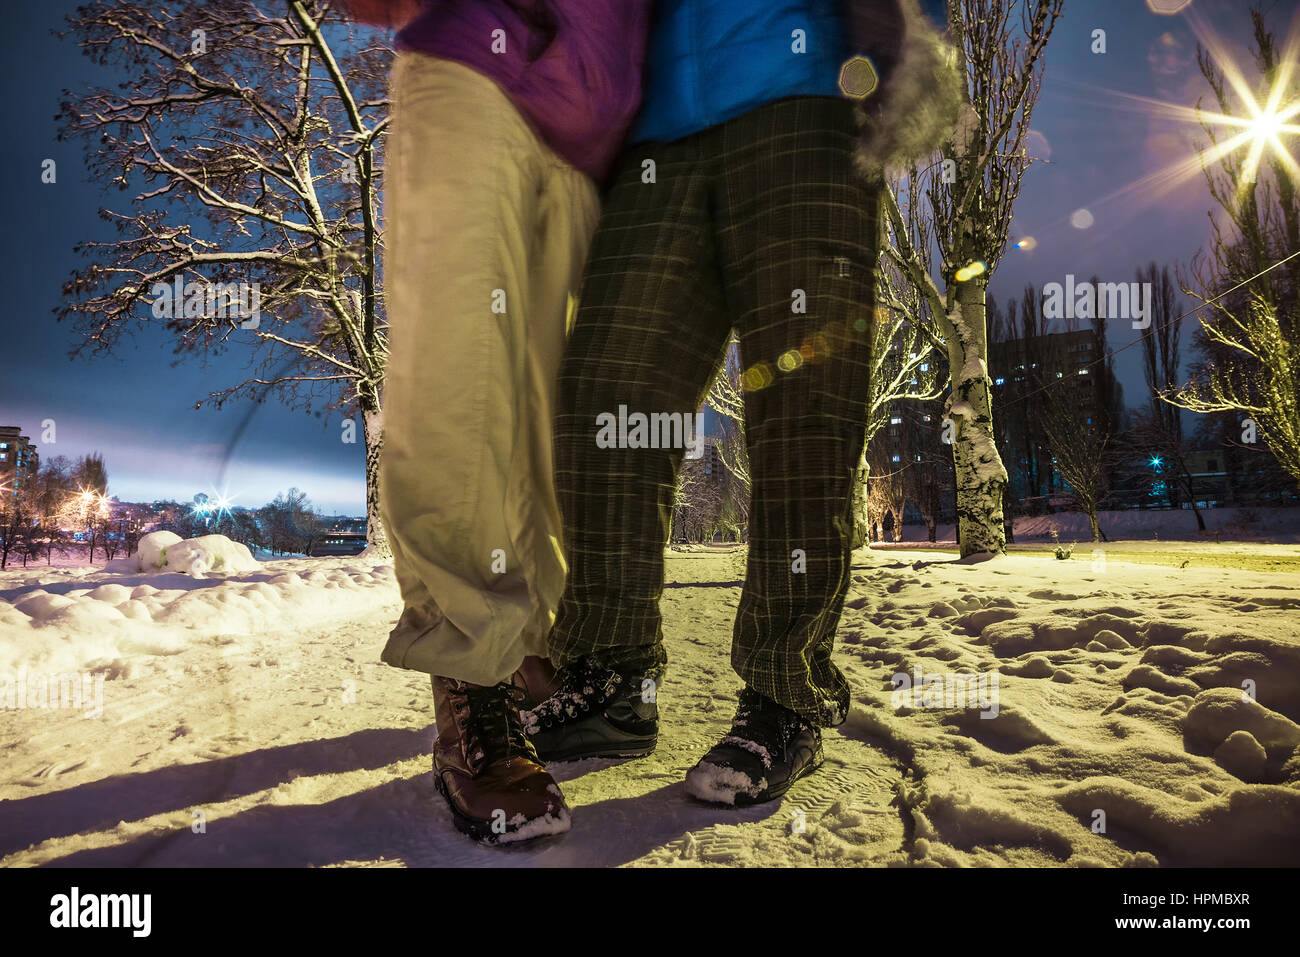 Two Human feet standing snowy road night street lamps - Stock Image